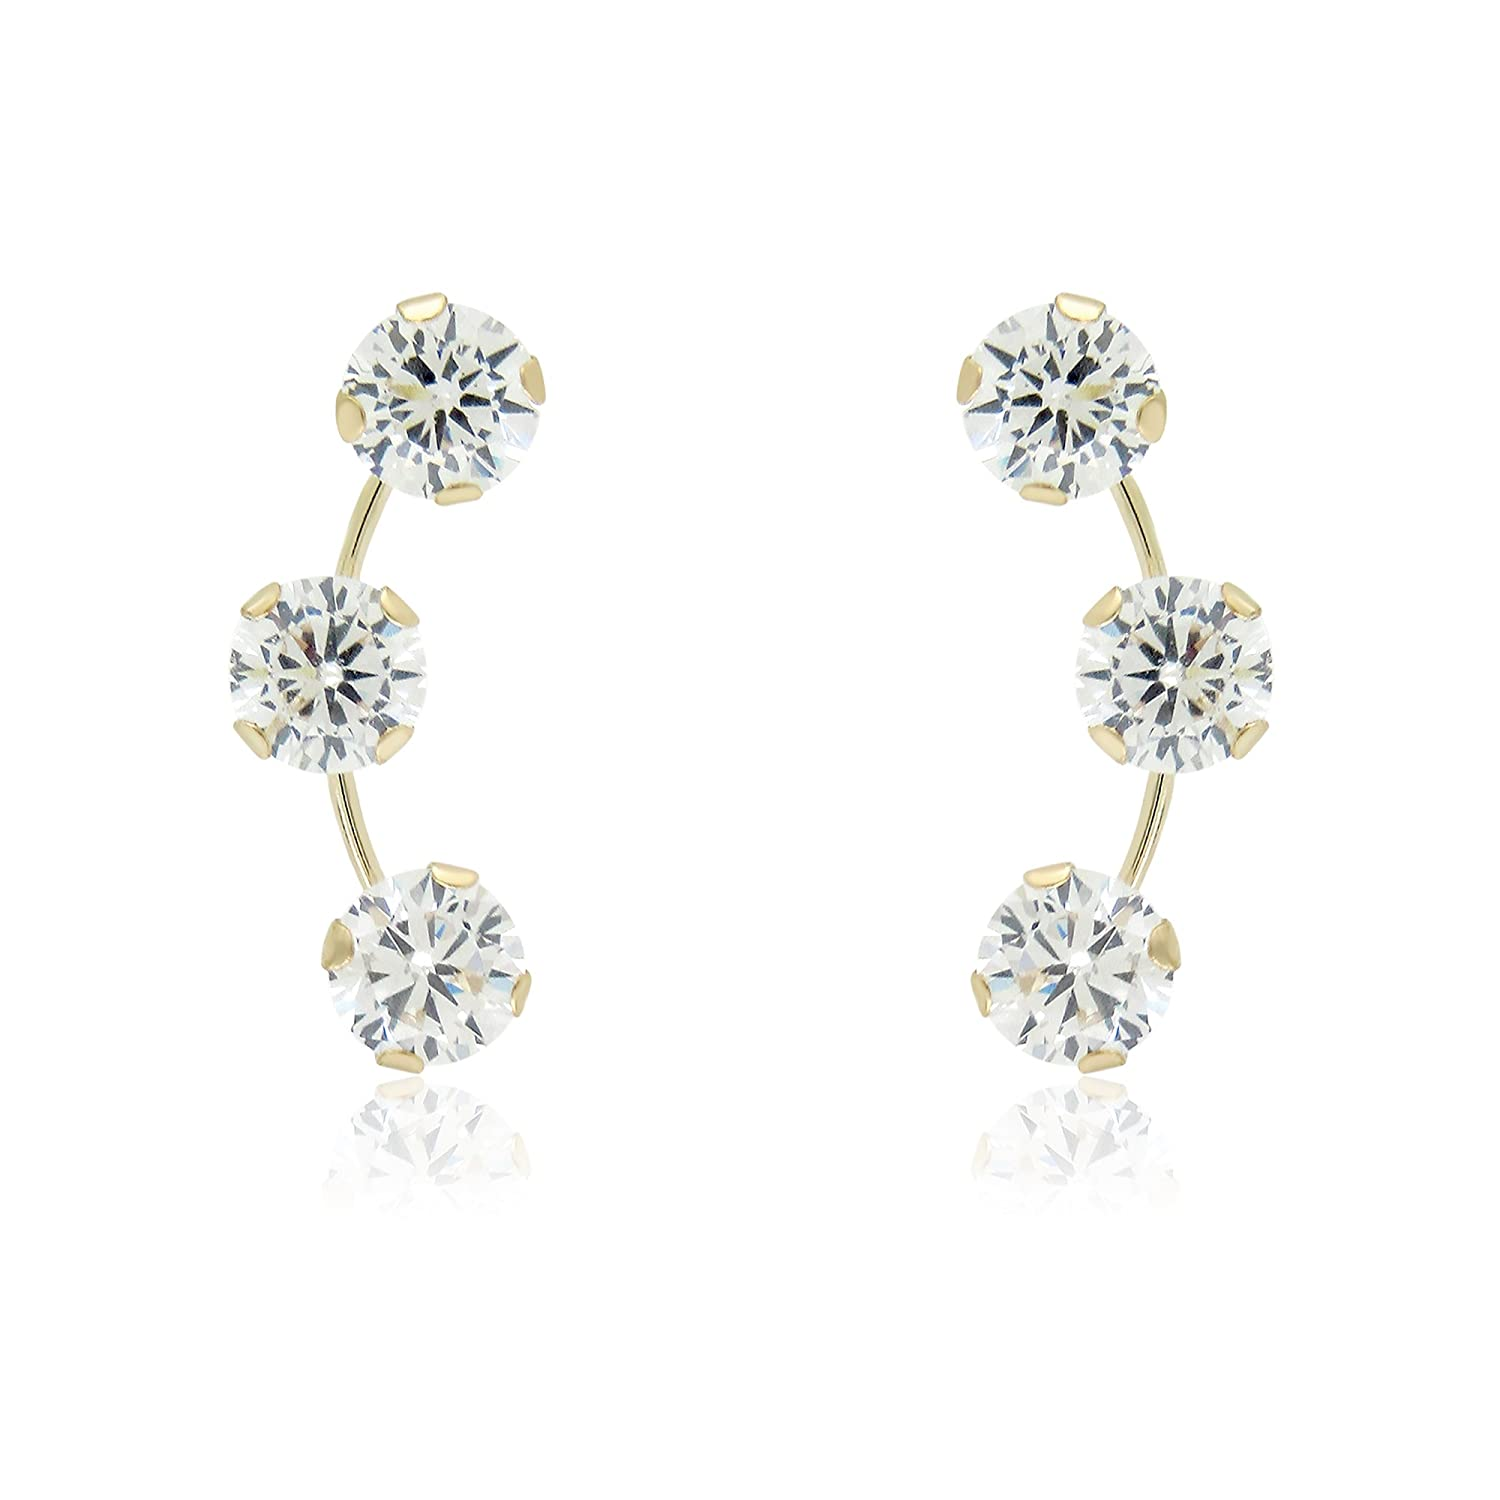 EARRINGS CZ SPRAY POST IN 10KT YELLOW GOLD 0.34 GRAMS G3 CORP 12003207